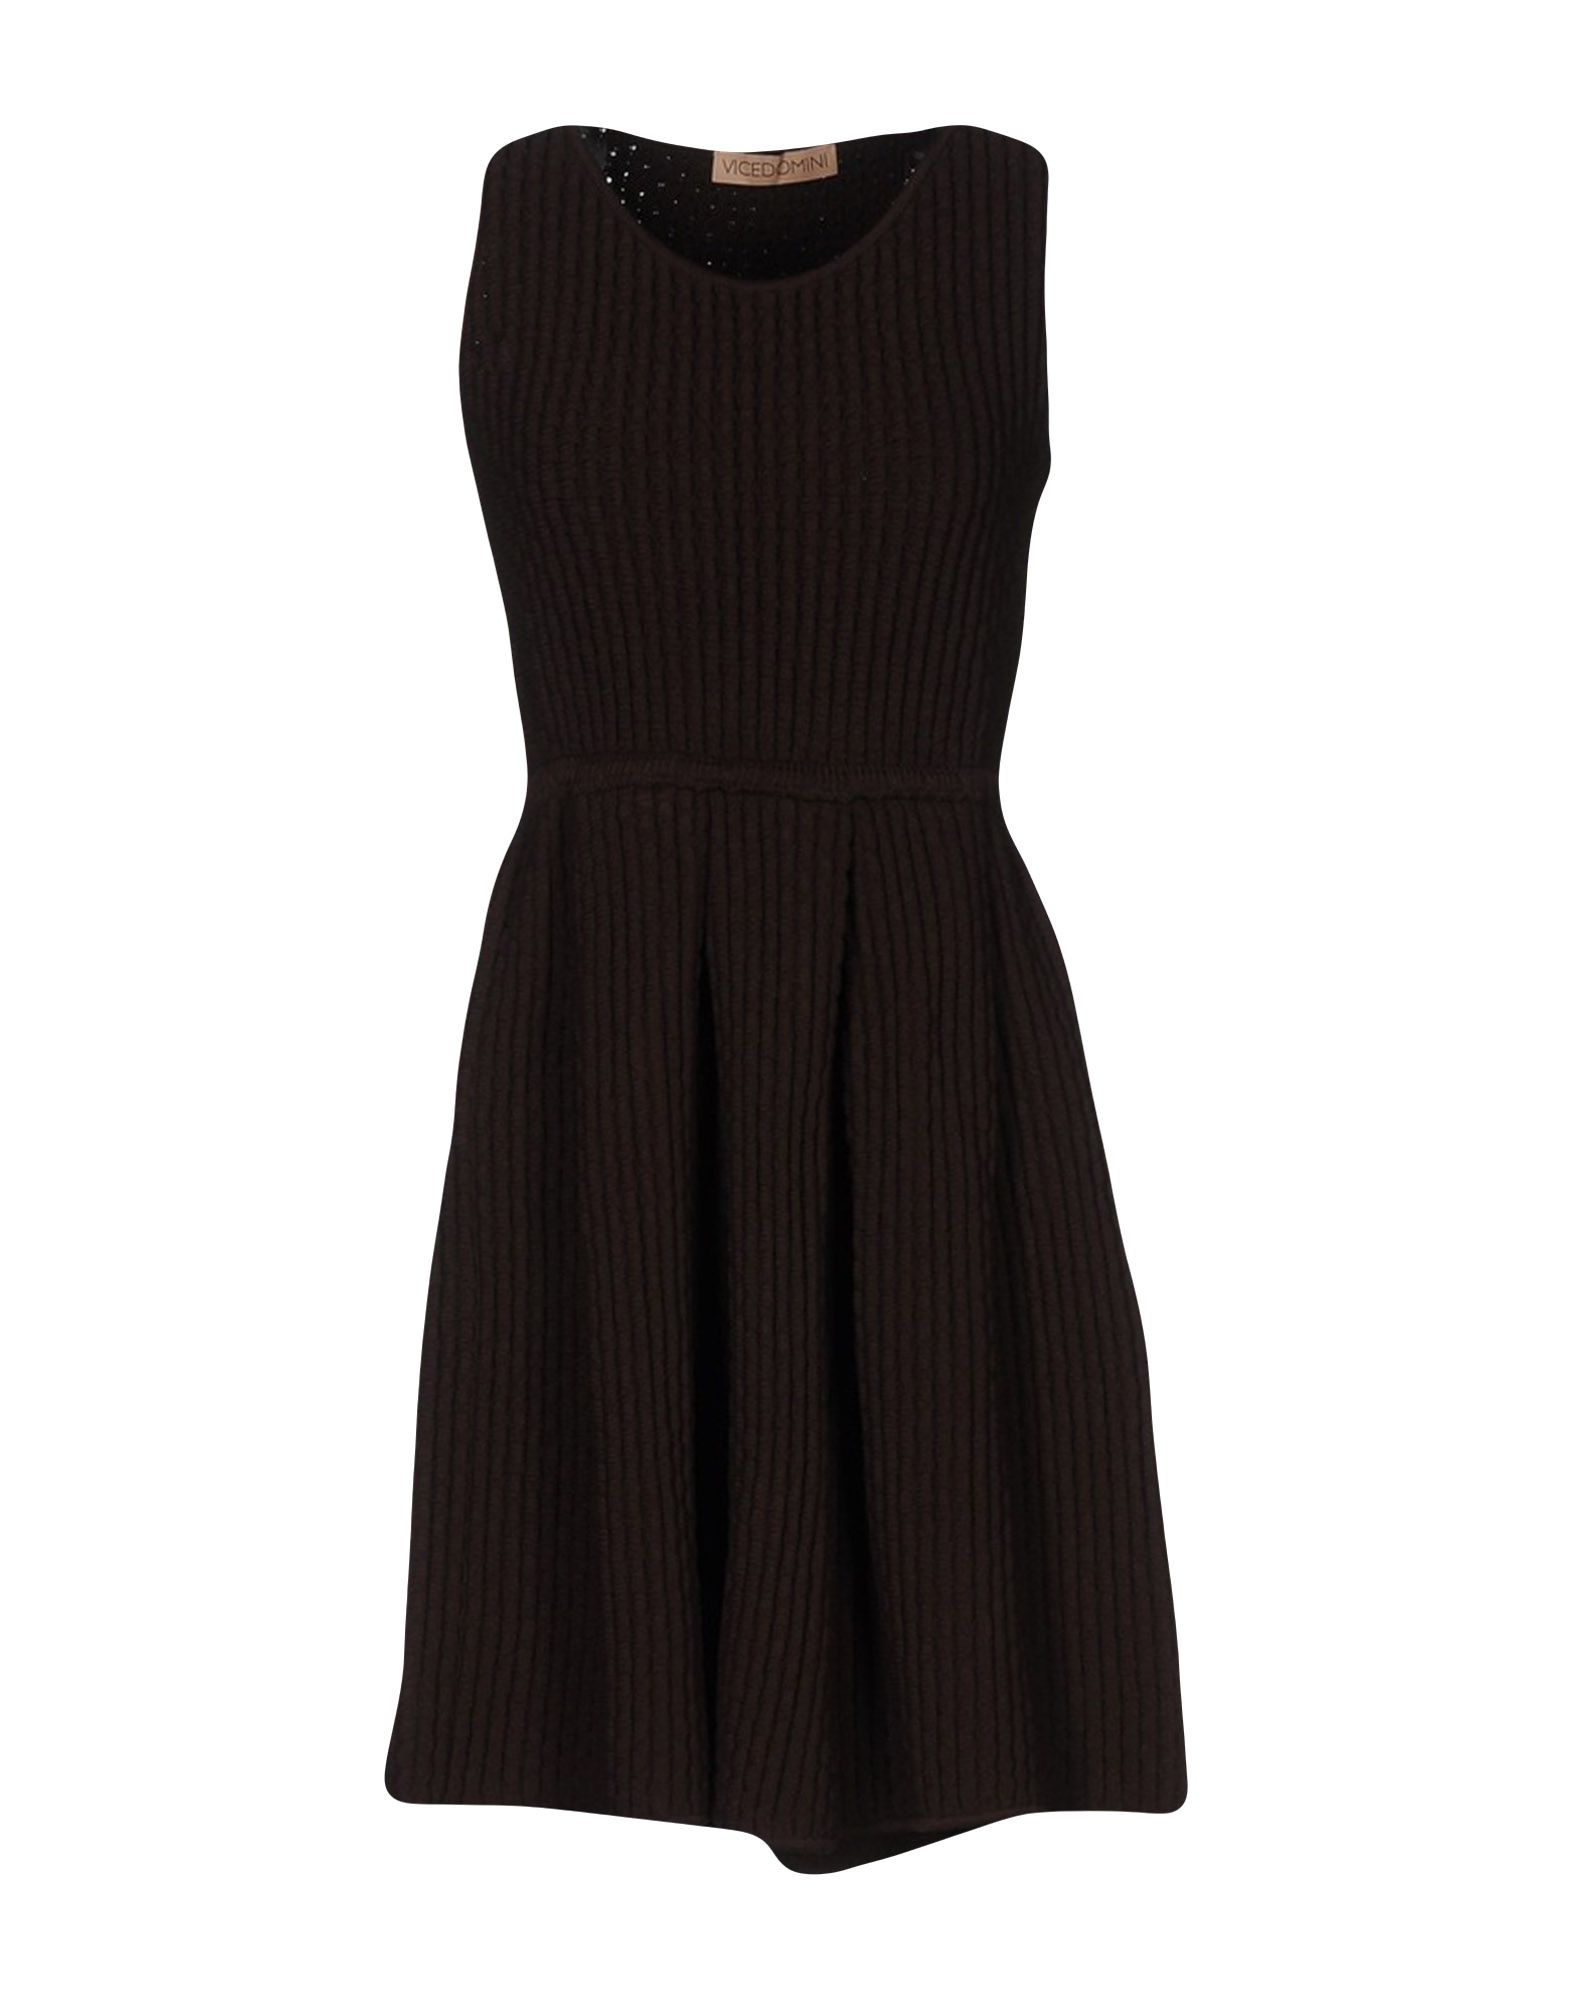 VICEDOMINI Short Dress in Cocoa